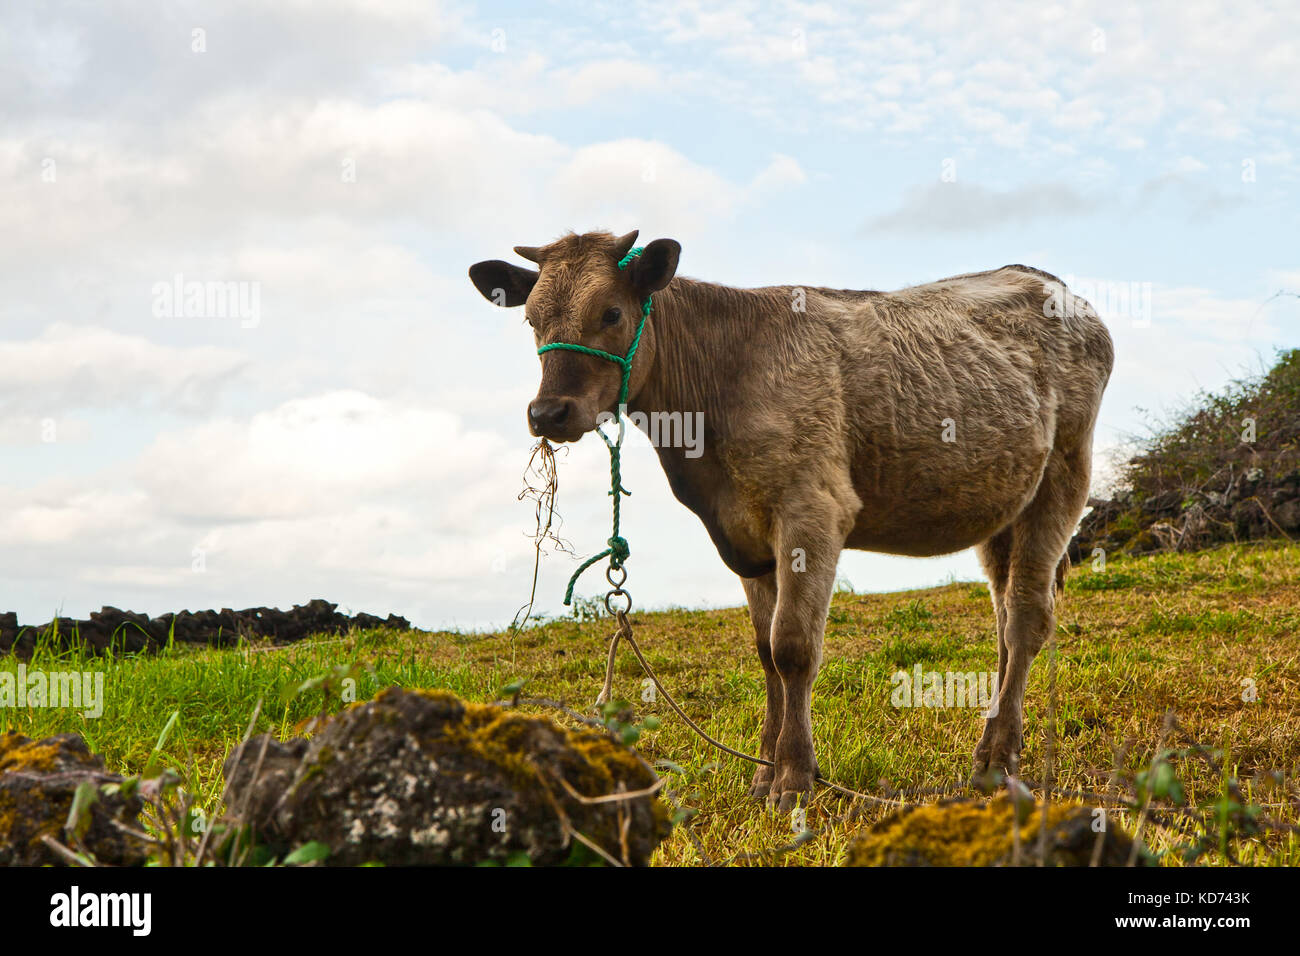 The calf eats a grass against the sky - Stock Image